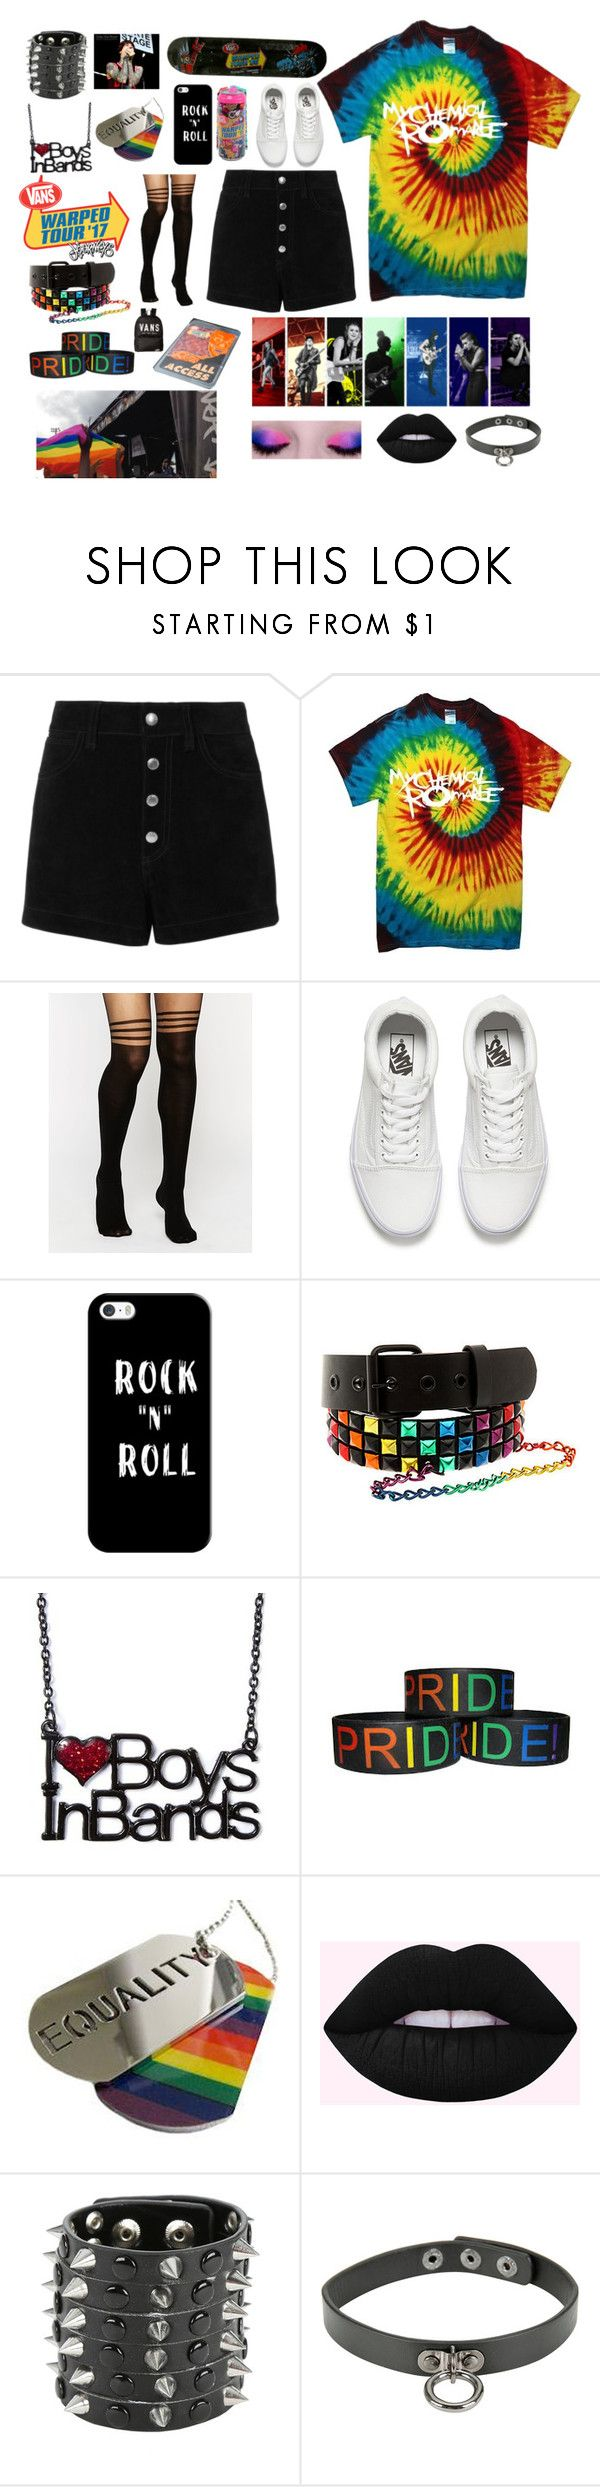 """""""Warped tour pride!"""" by pastel-punk-princess-of-night ❤ liked on Polyvore featuring rag & bone/JEAN, ASOS, Vans, Casetify and ADAM"""